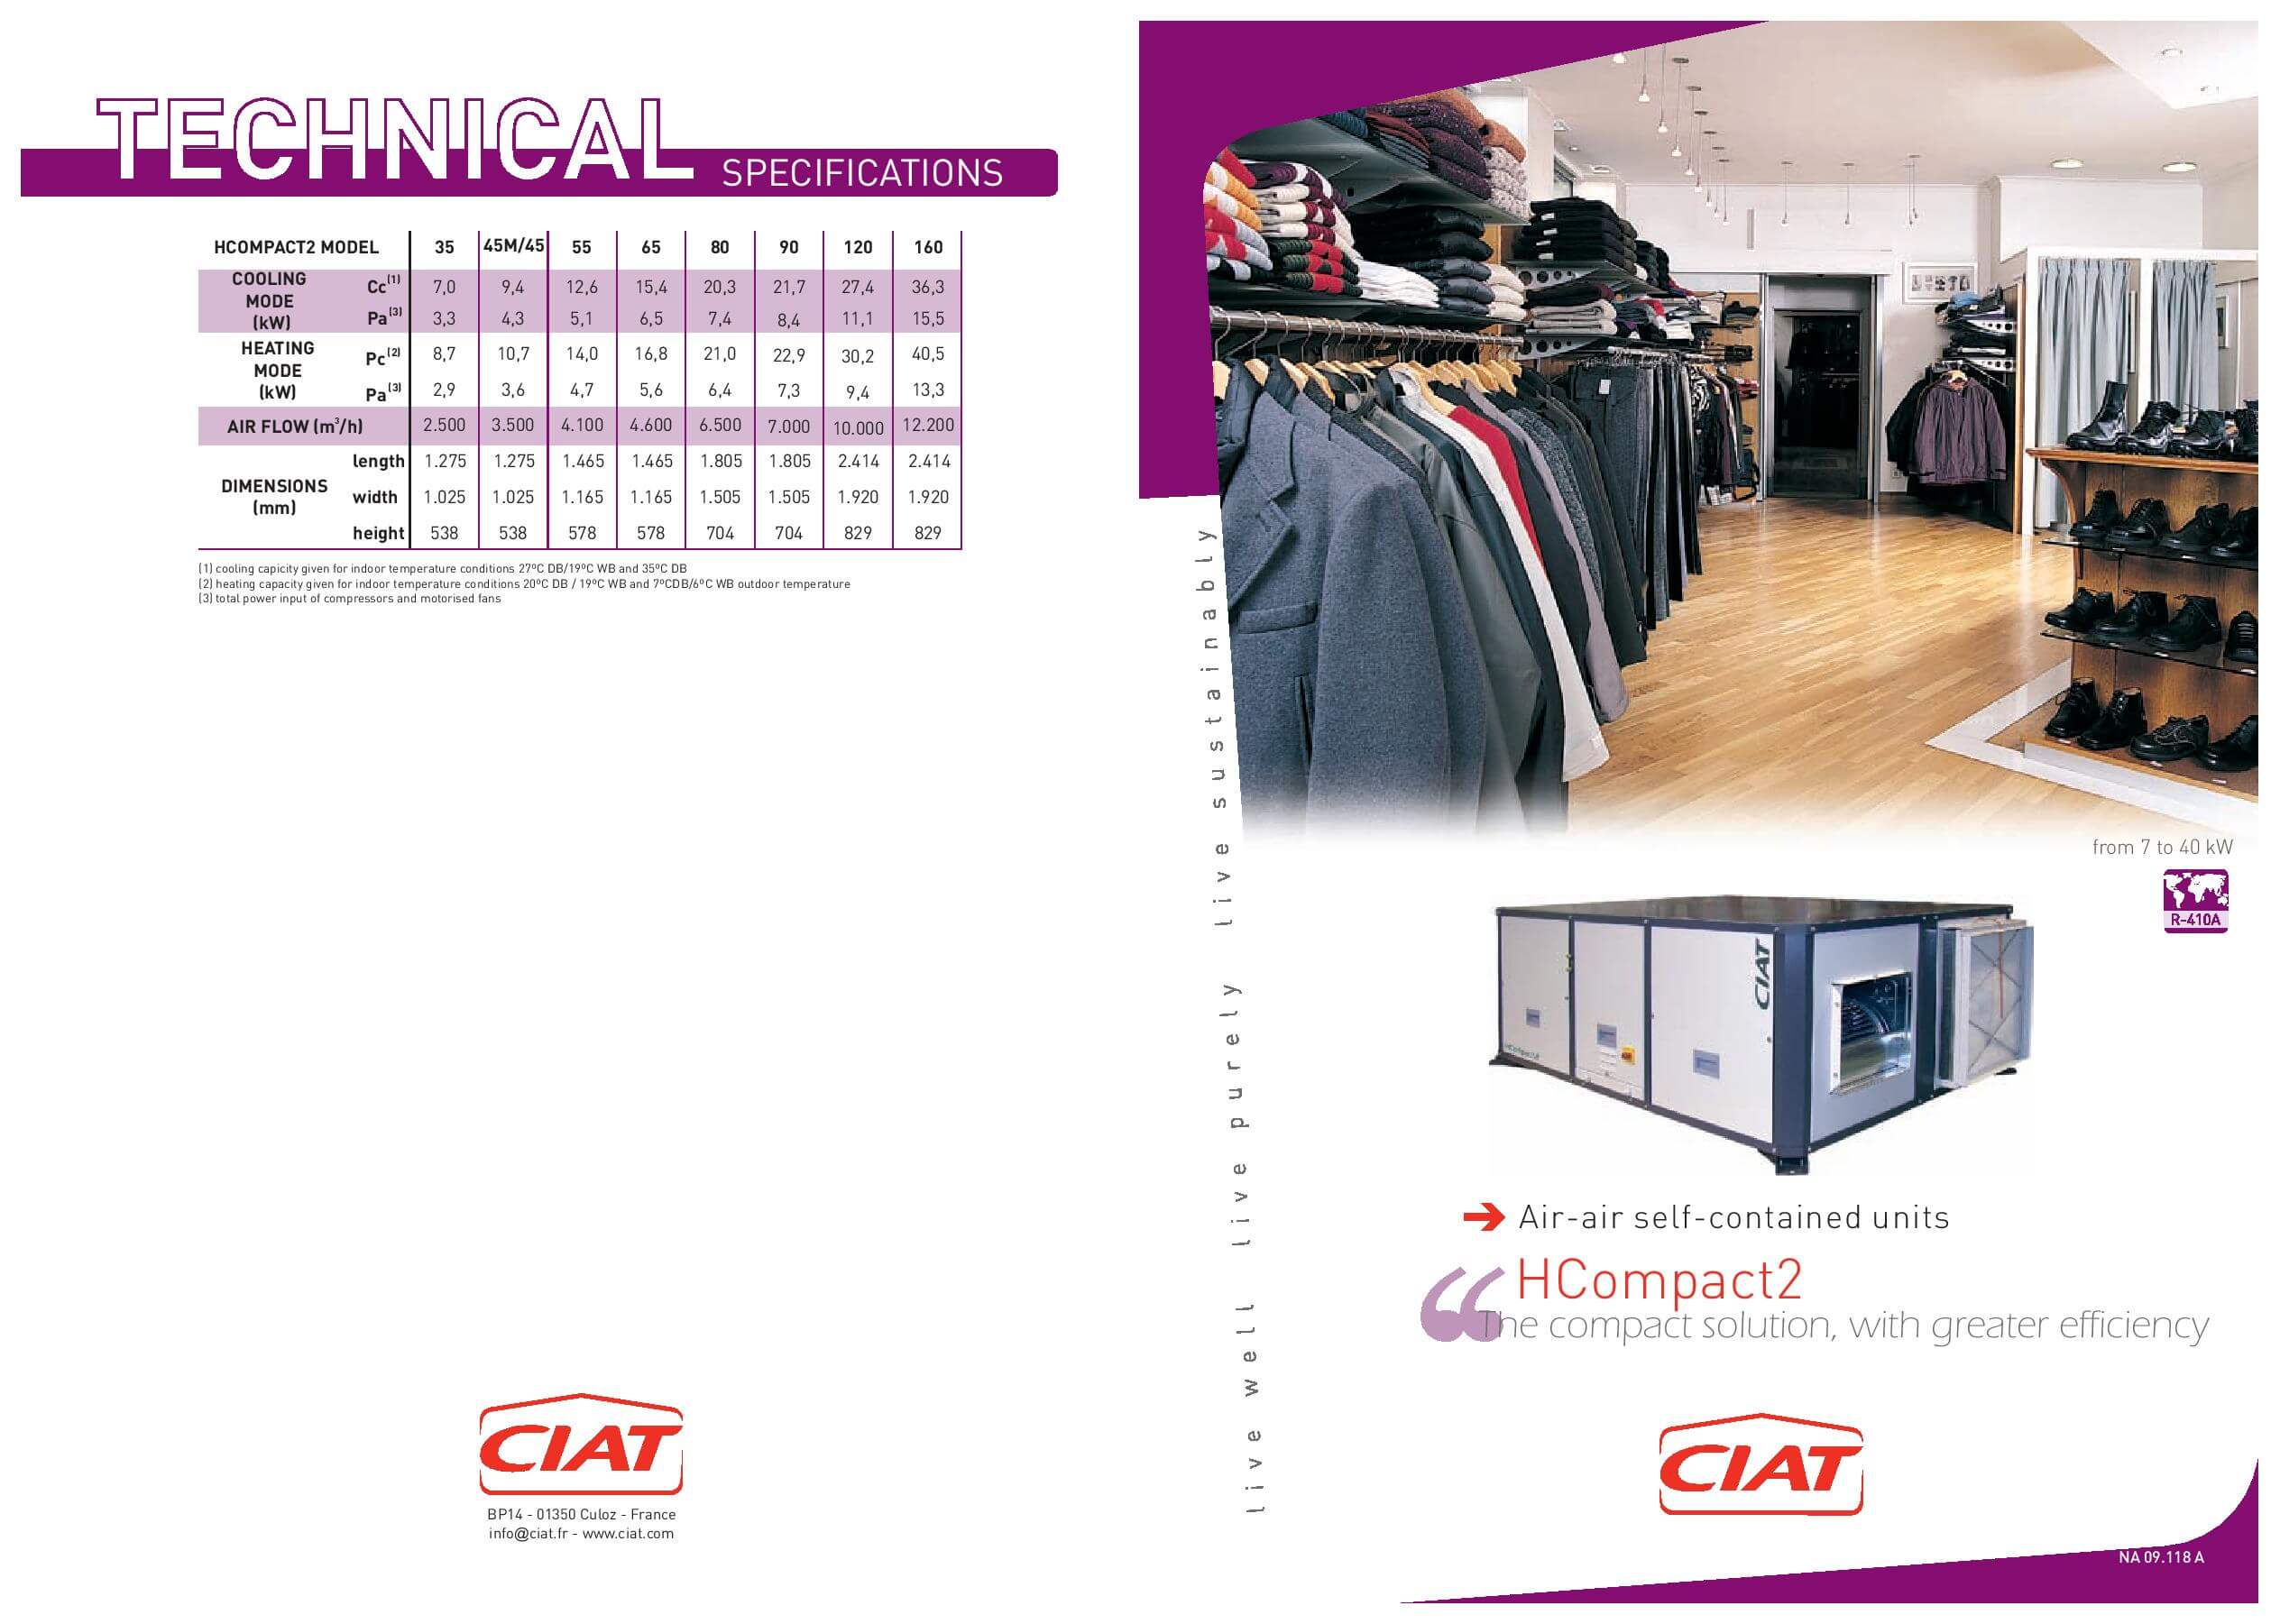 H Compact Ciat Air Conditioning And Heating